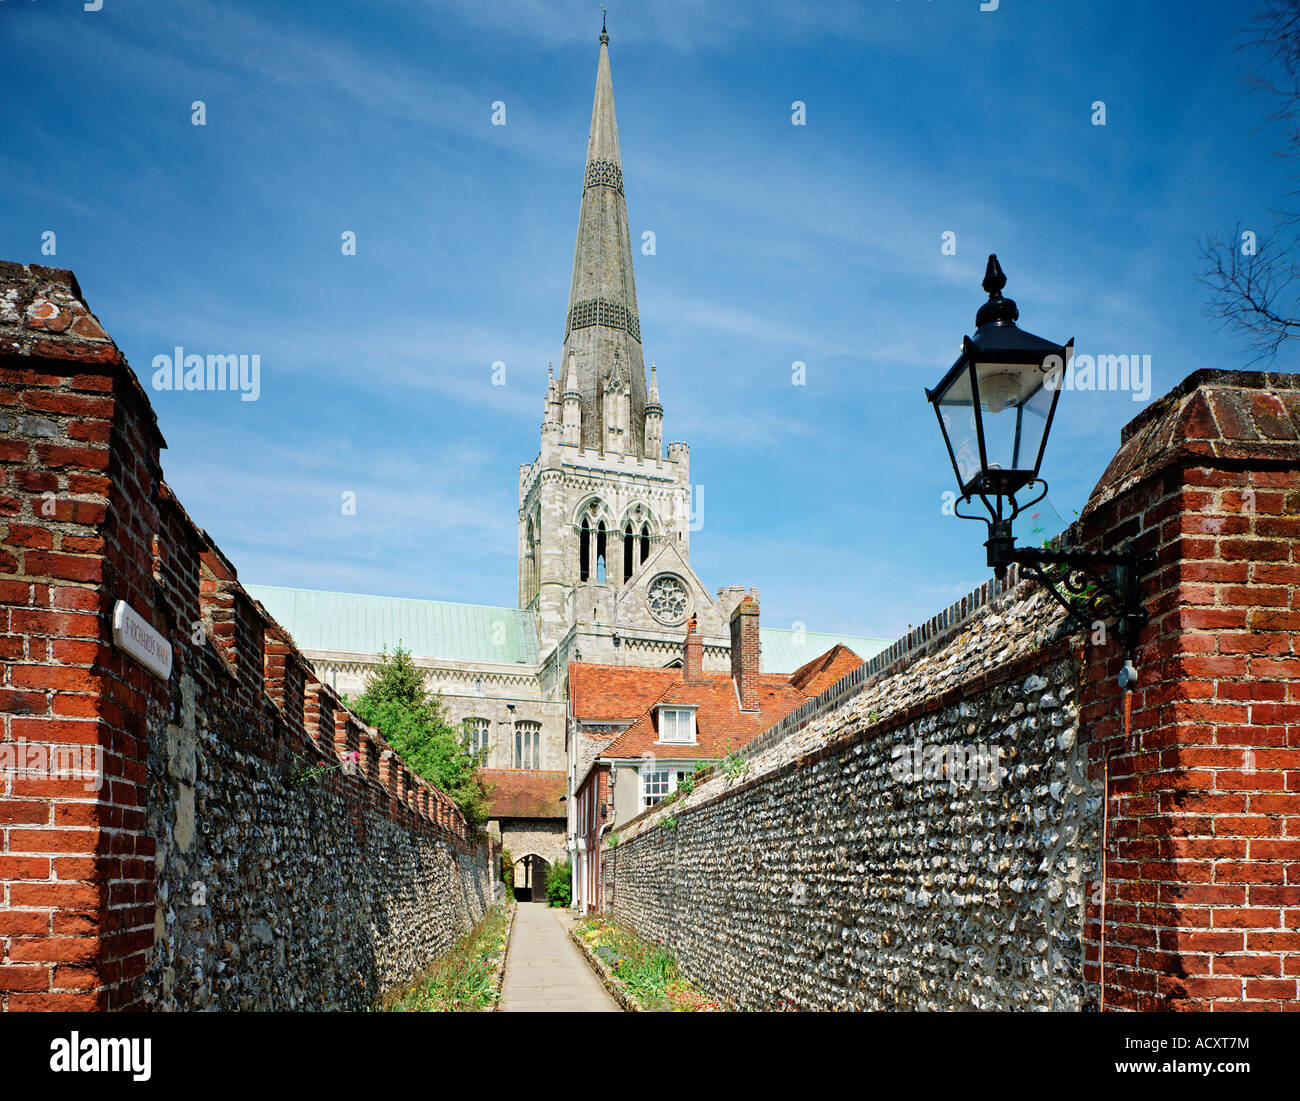 GB WEST SUSSEX CHICHESTER CATHEDRAL ST RICHARD S WALK - Stock Image